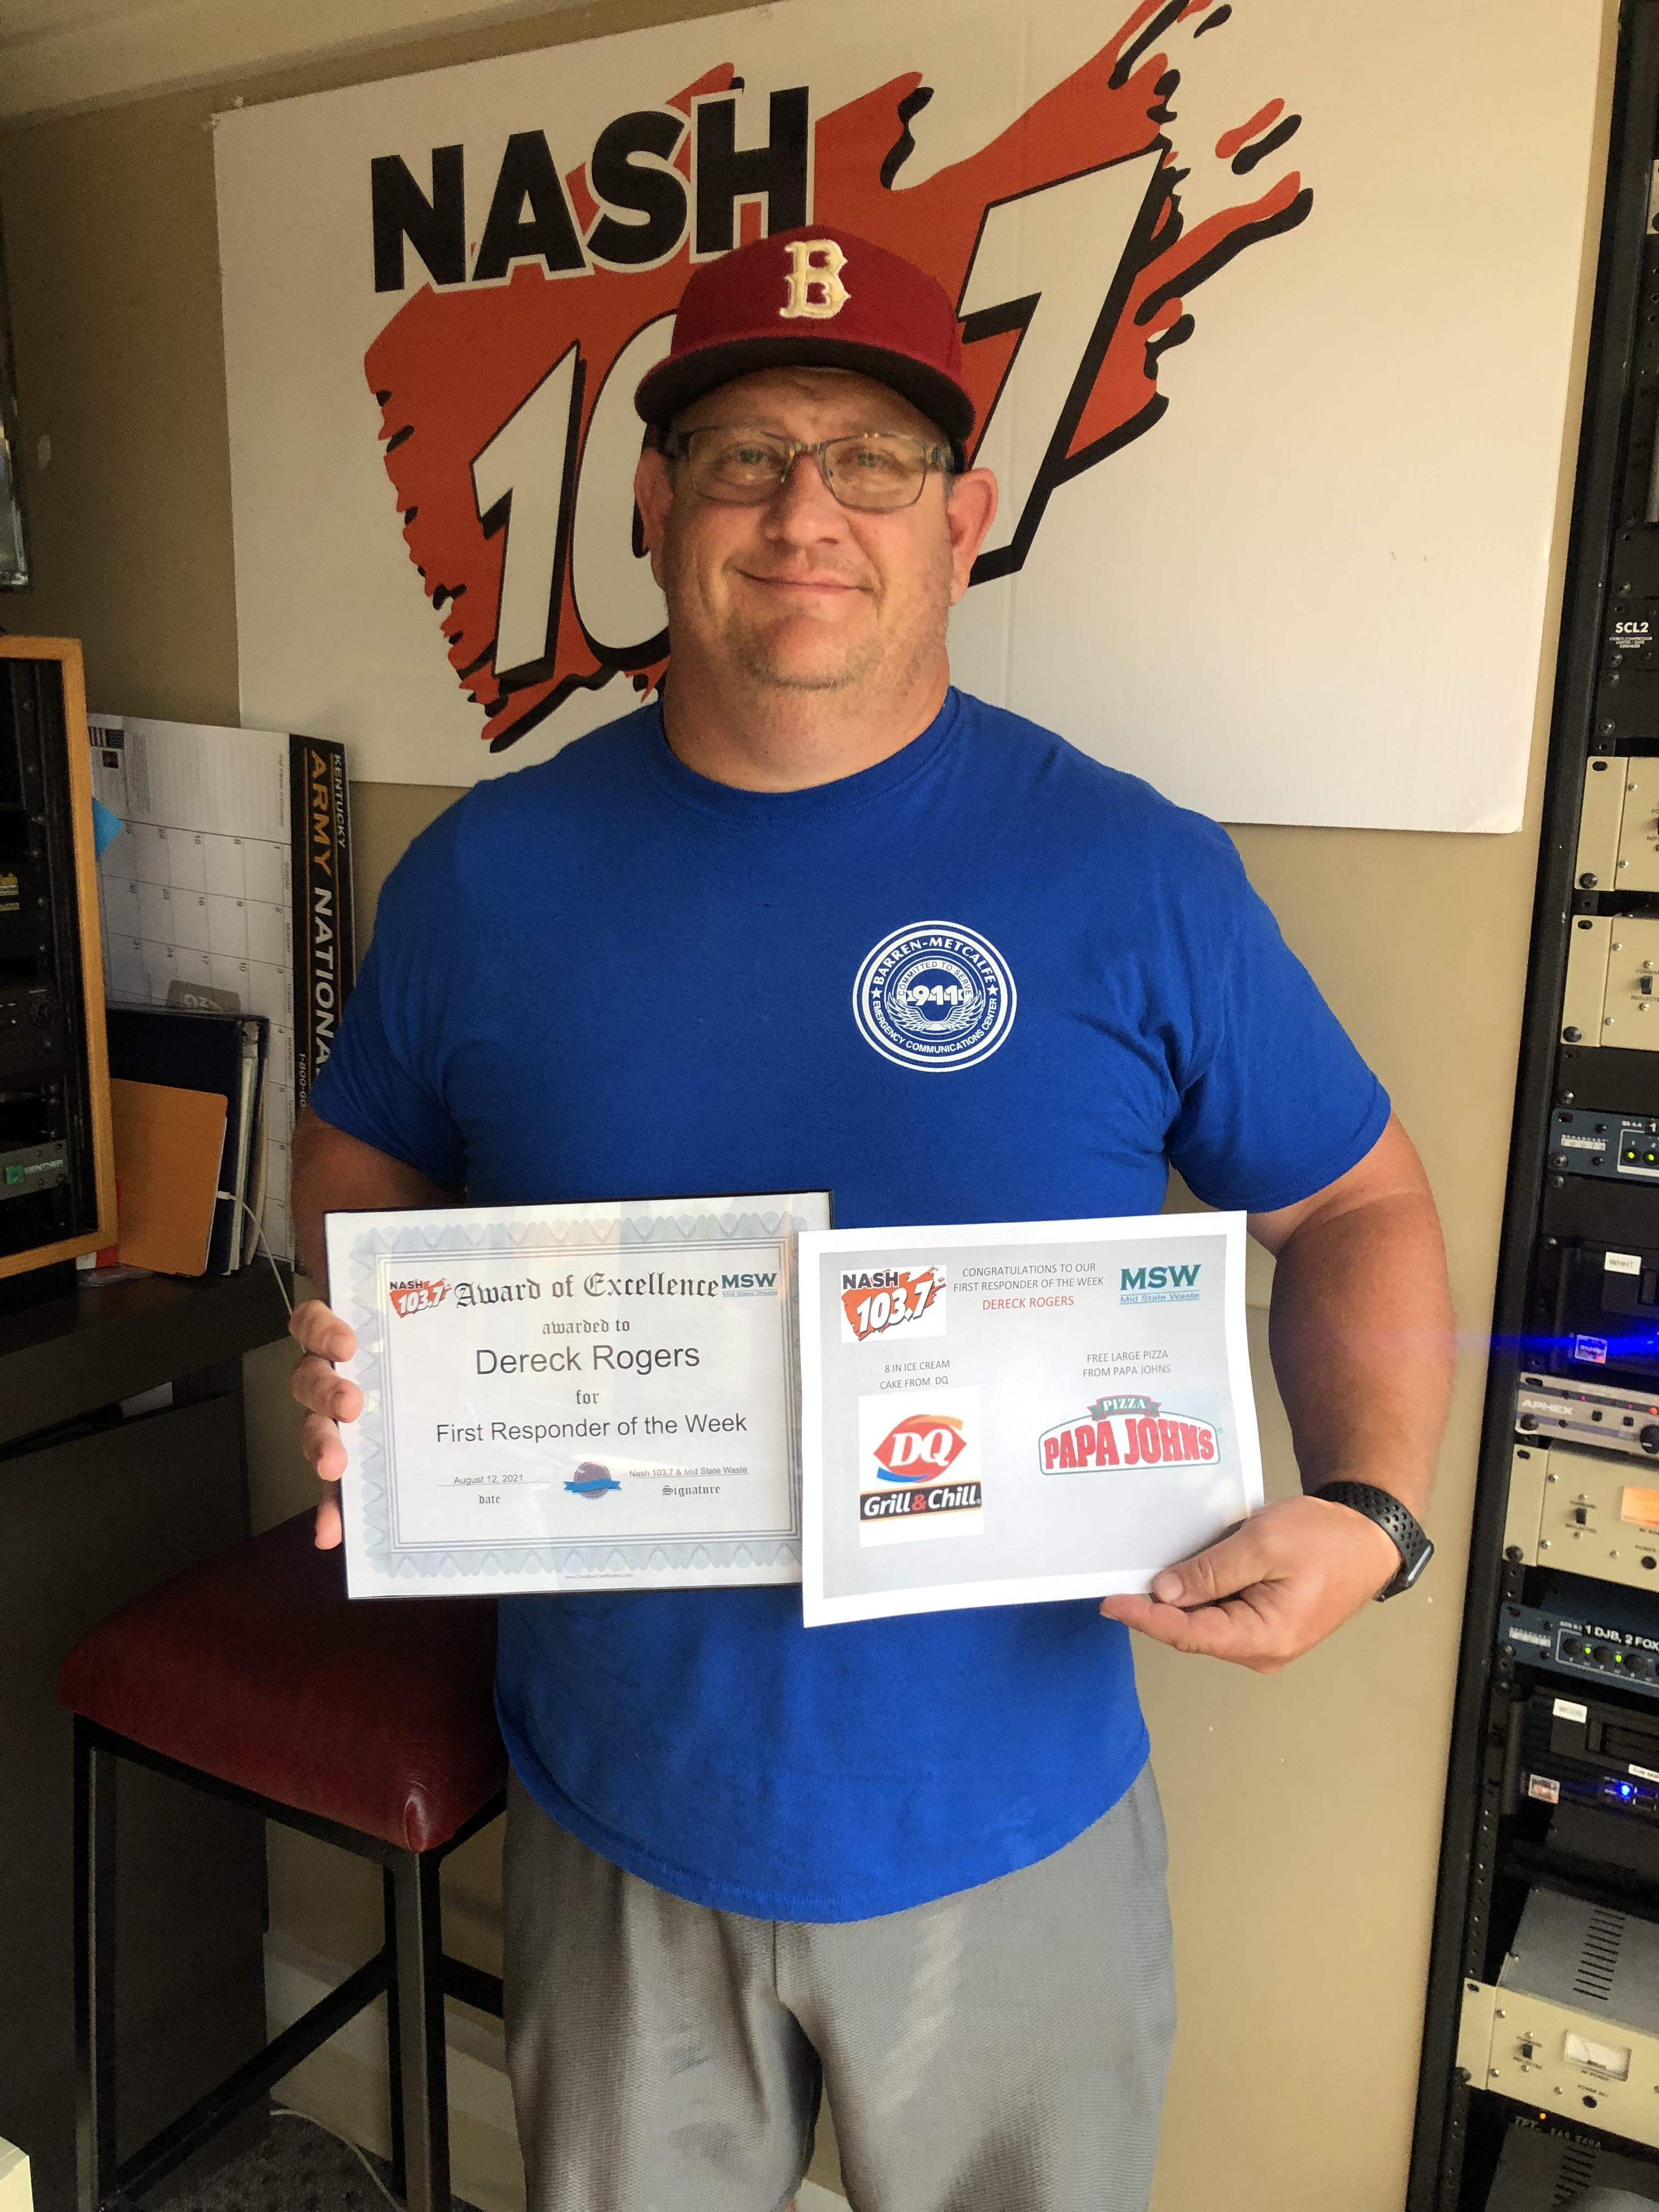 Meet Dereck Rogers, our newest First Responder of the Week